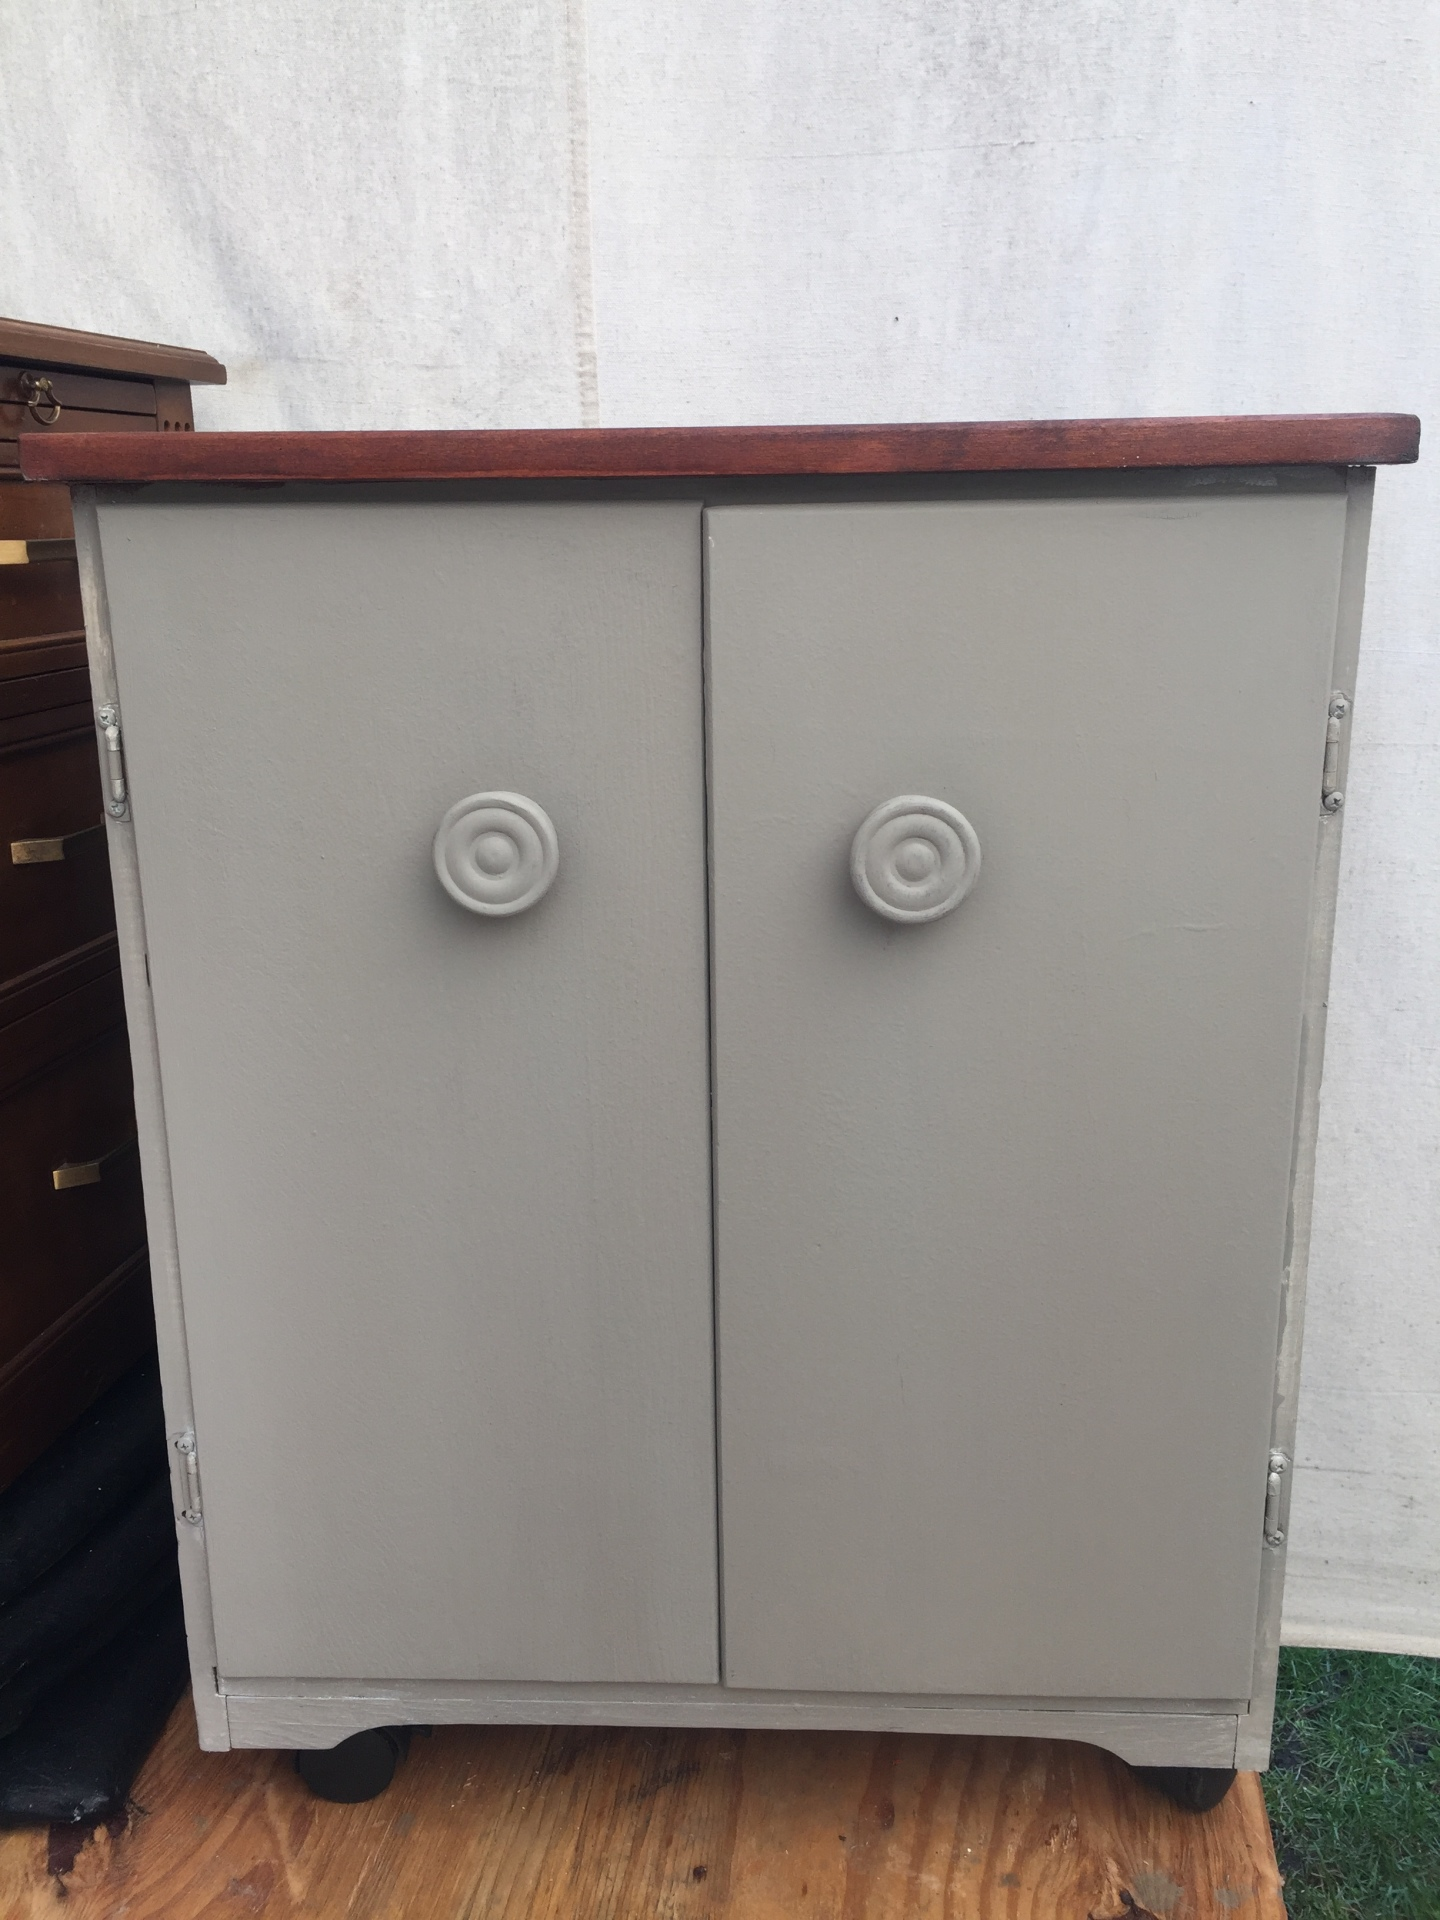 Wooden cabinet $125 - front access for cleaning litter box